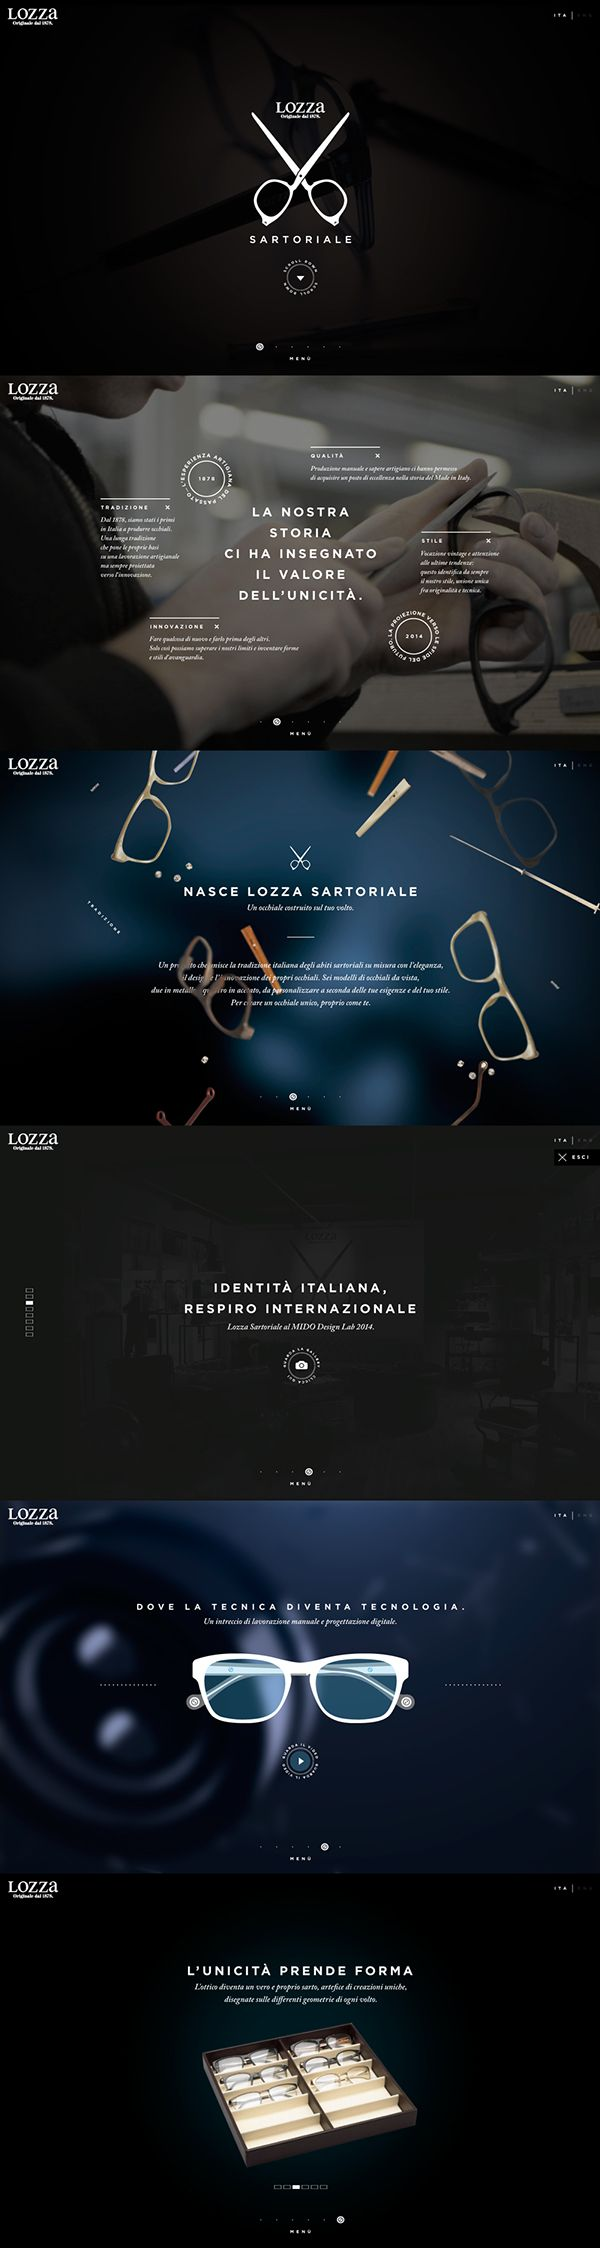 LOZZA SARTORIALE _ New website by Davide Scarpantonio, via Behance| #webdesign #it #web #design #layout #userinterface #website #webdesign repinned by www.BlickeDeeler.de | Visit our website www.blickedeeler.de/leistungen/webdesign